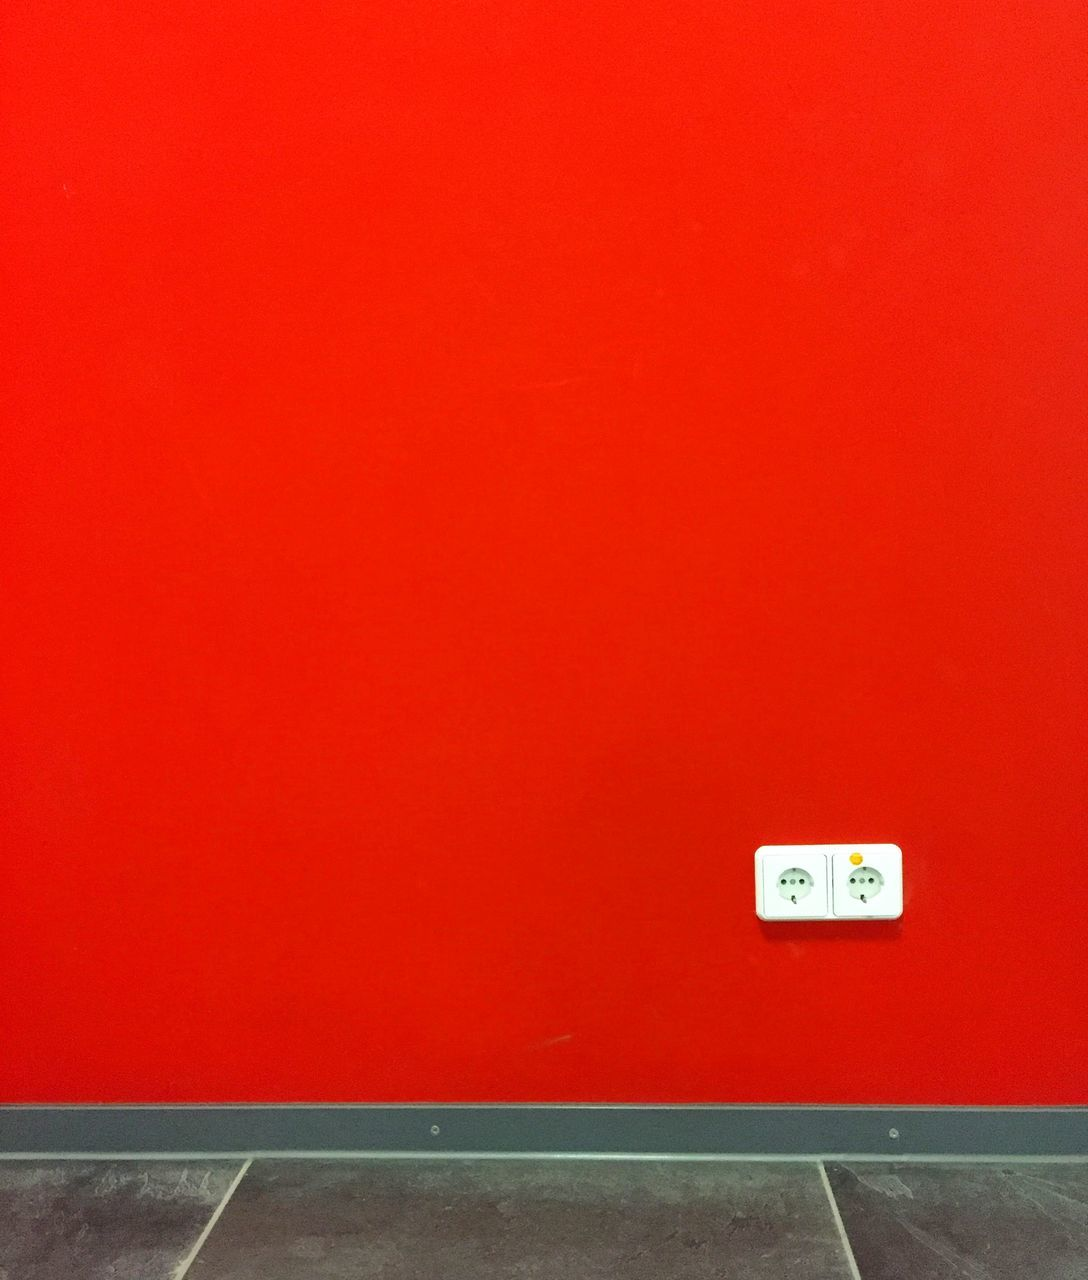 Light Switch On Red Wall At Home